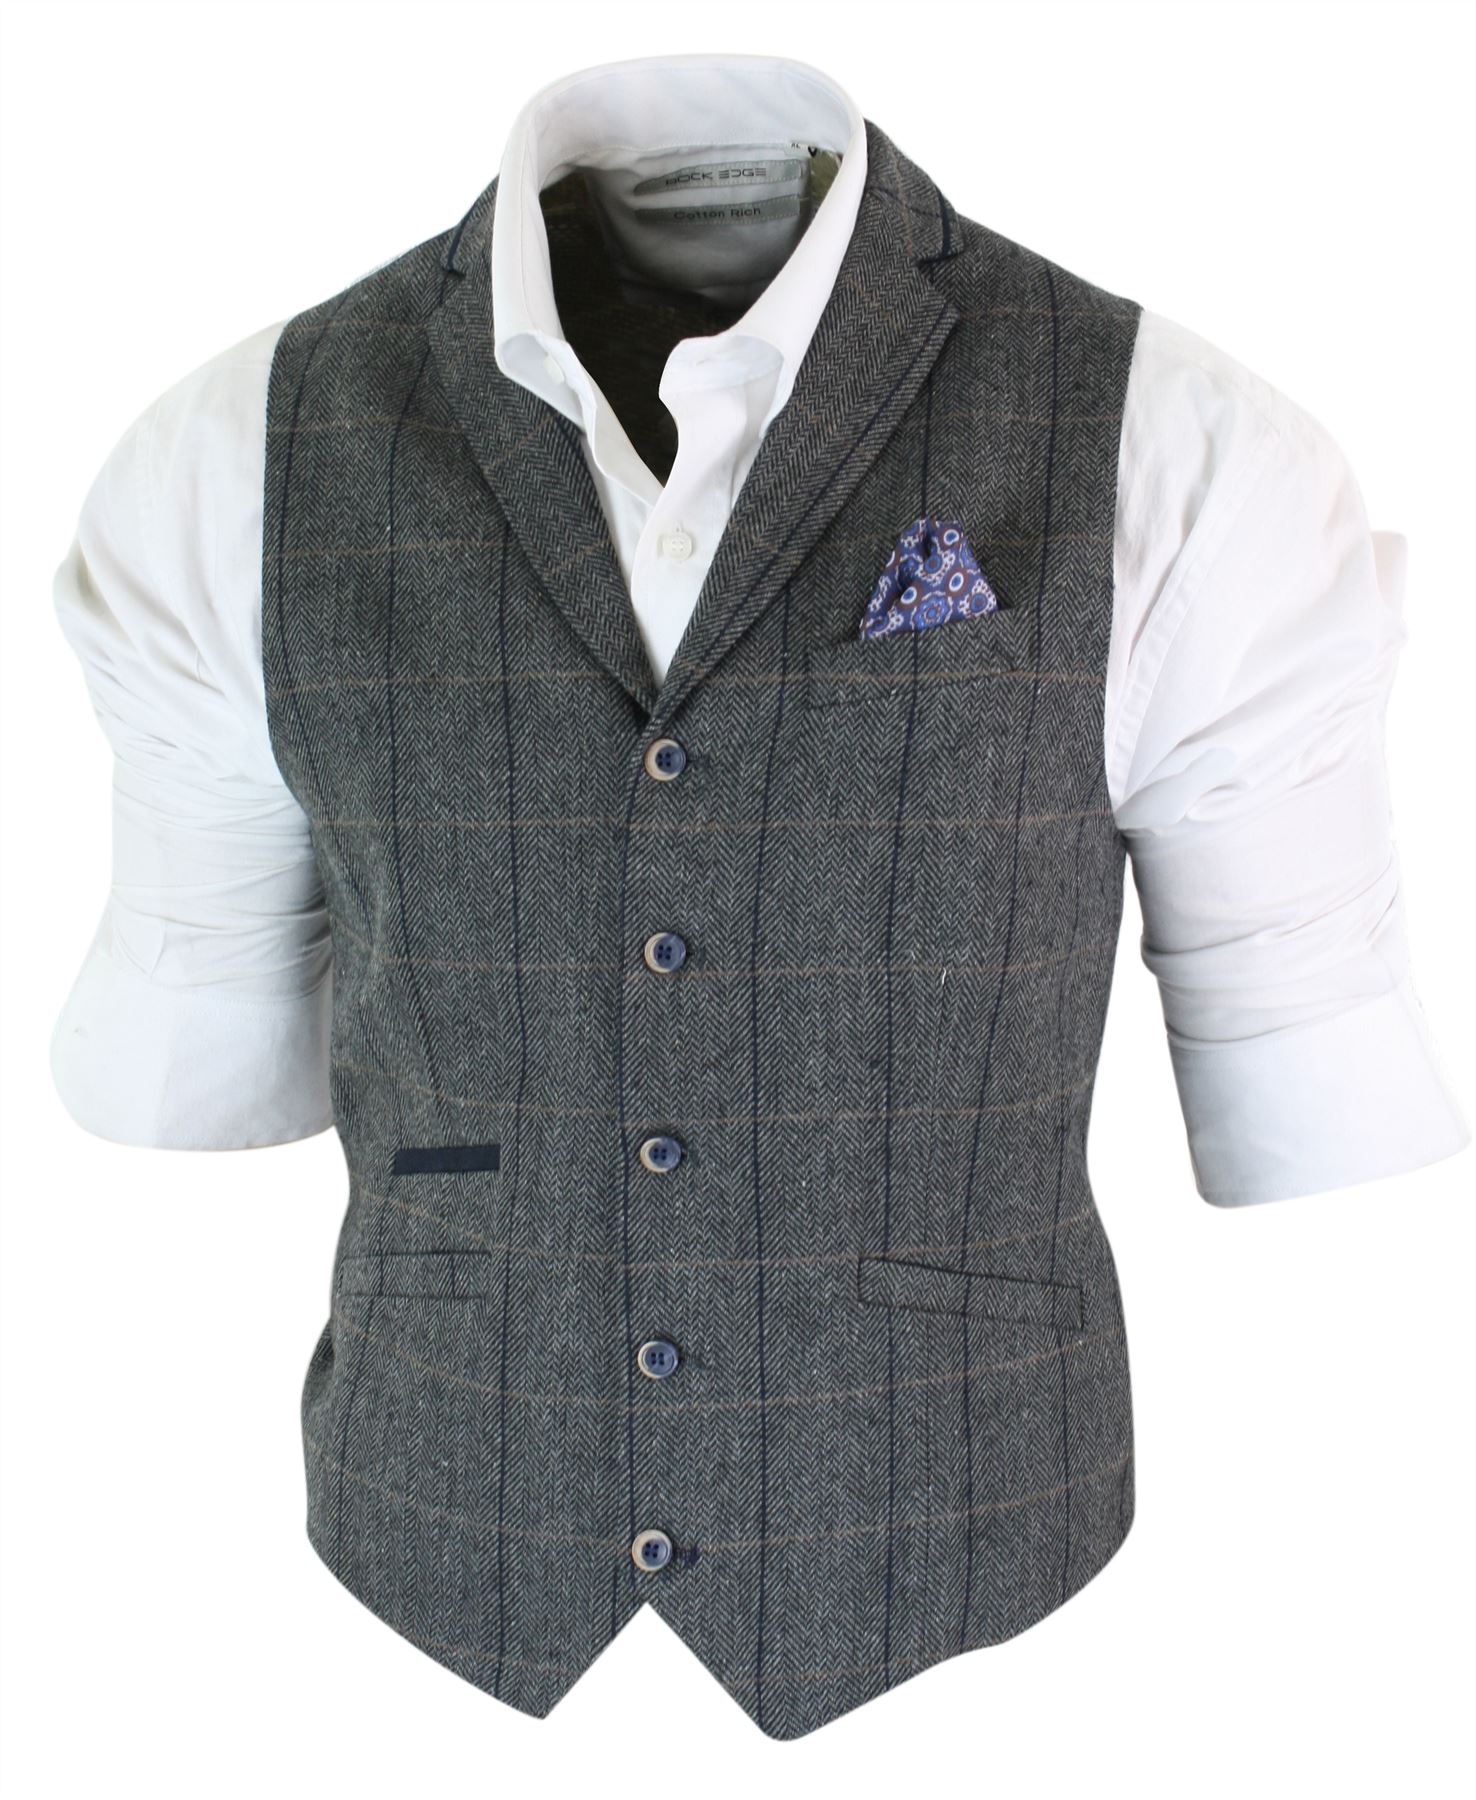 ramasser 4938e ef5ed Details about Mens waistcoat jacket tweed herringbone check brown grey  vintage slim fit- show original title